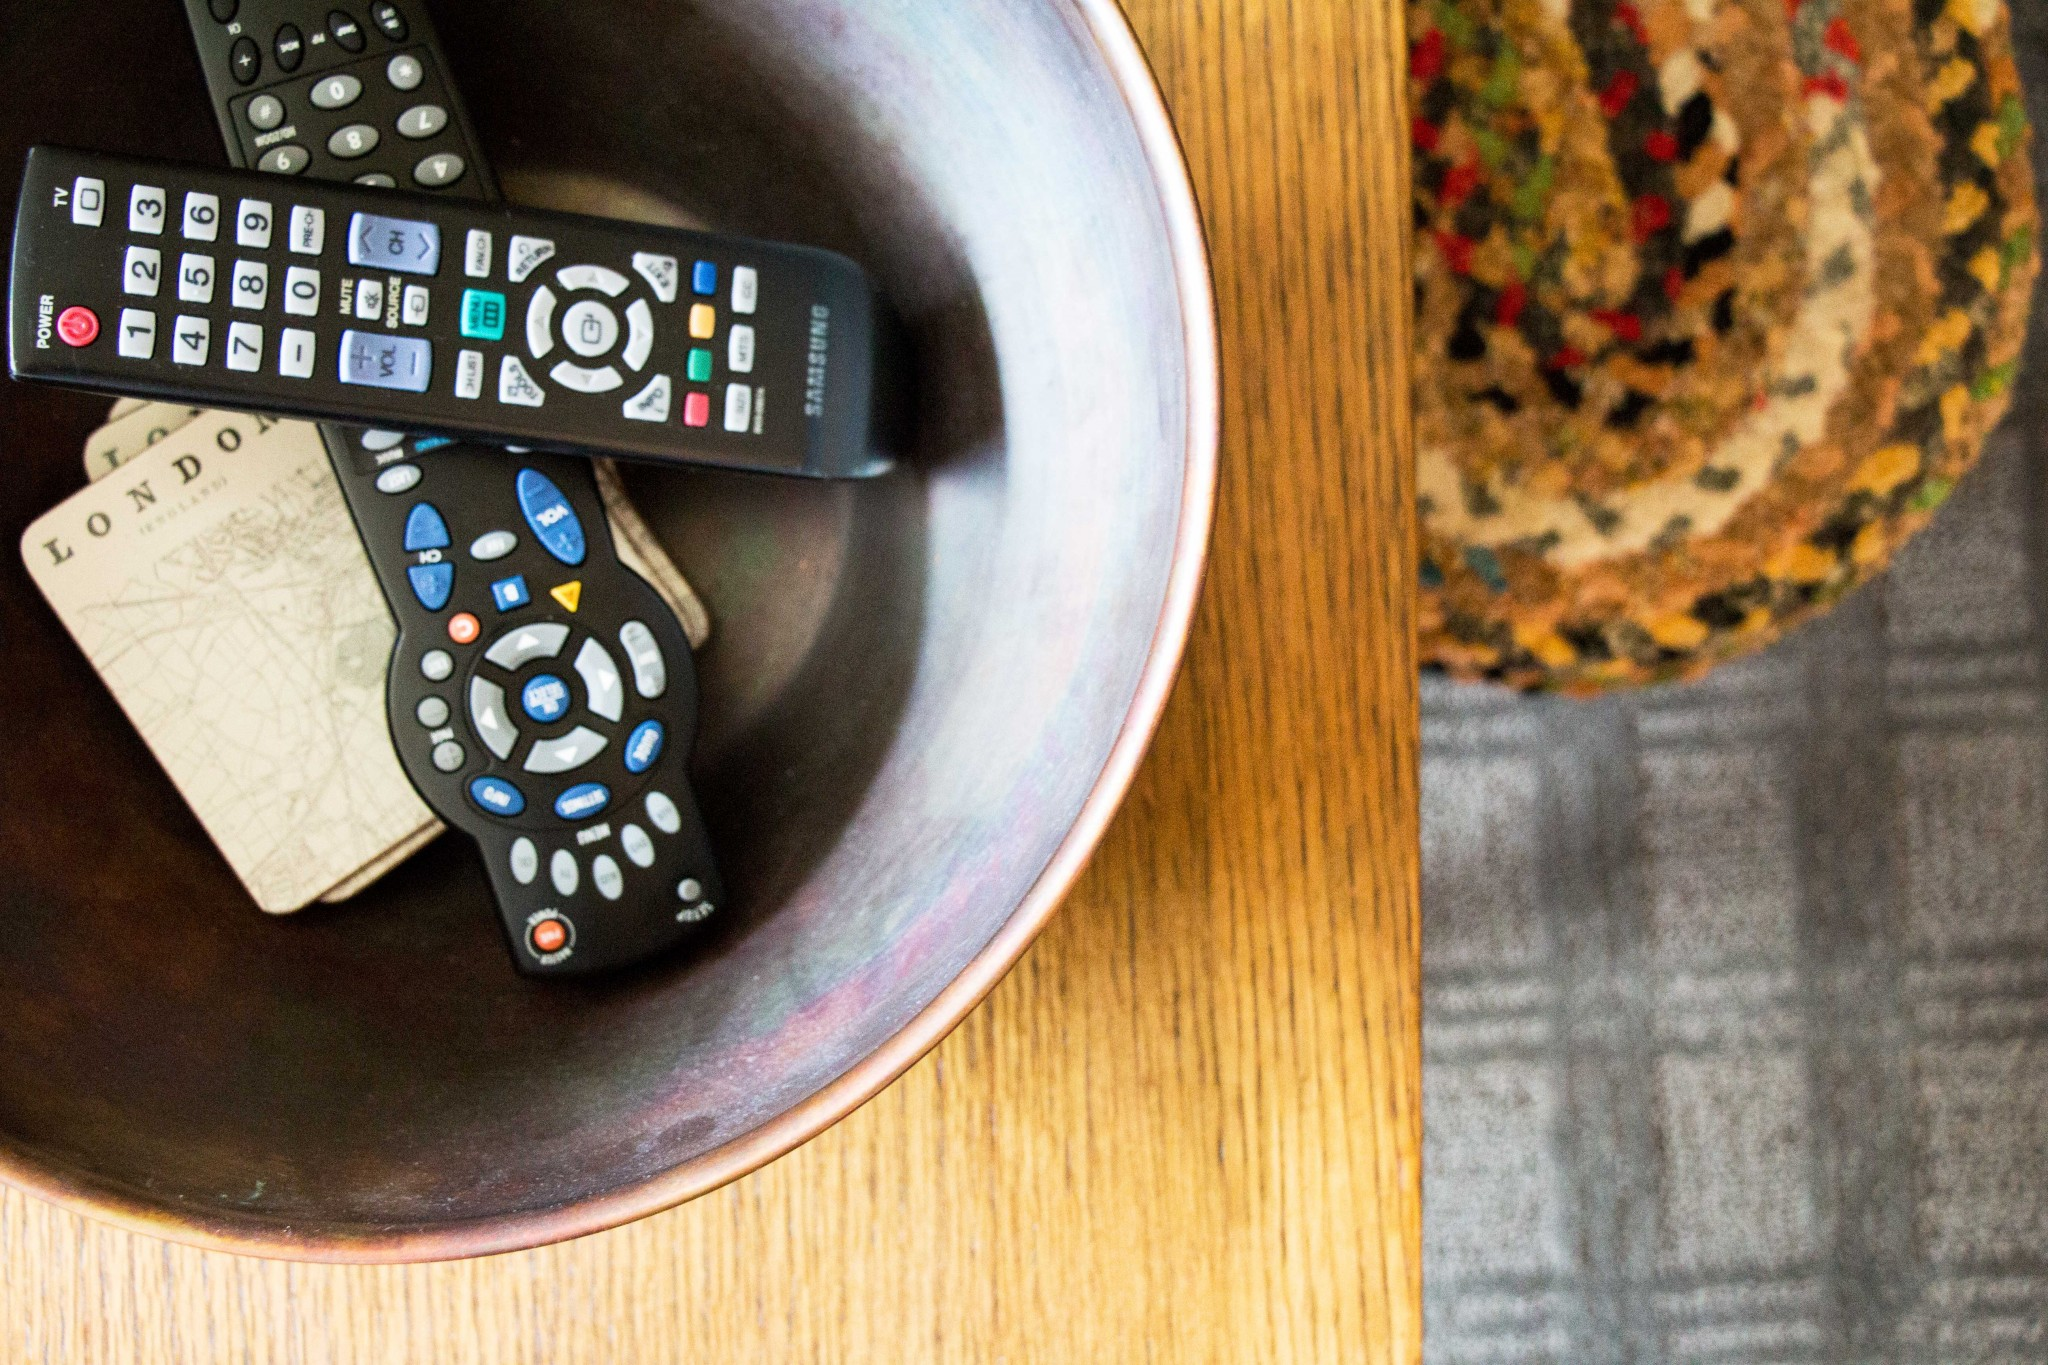 TV remotes stored in a metal bowl on a console table